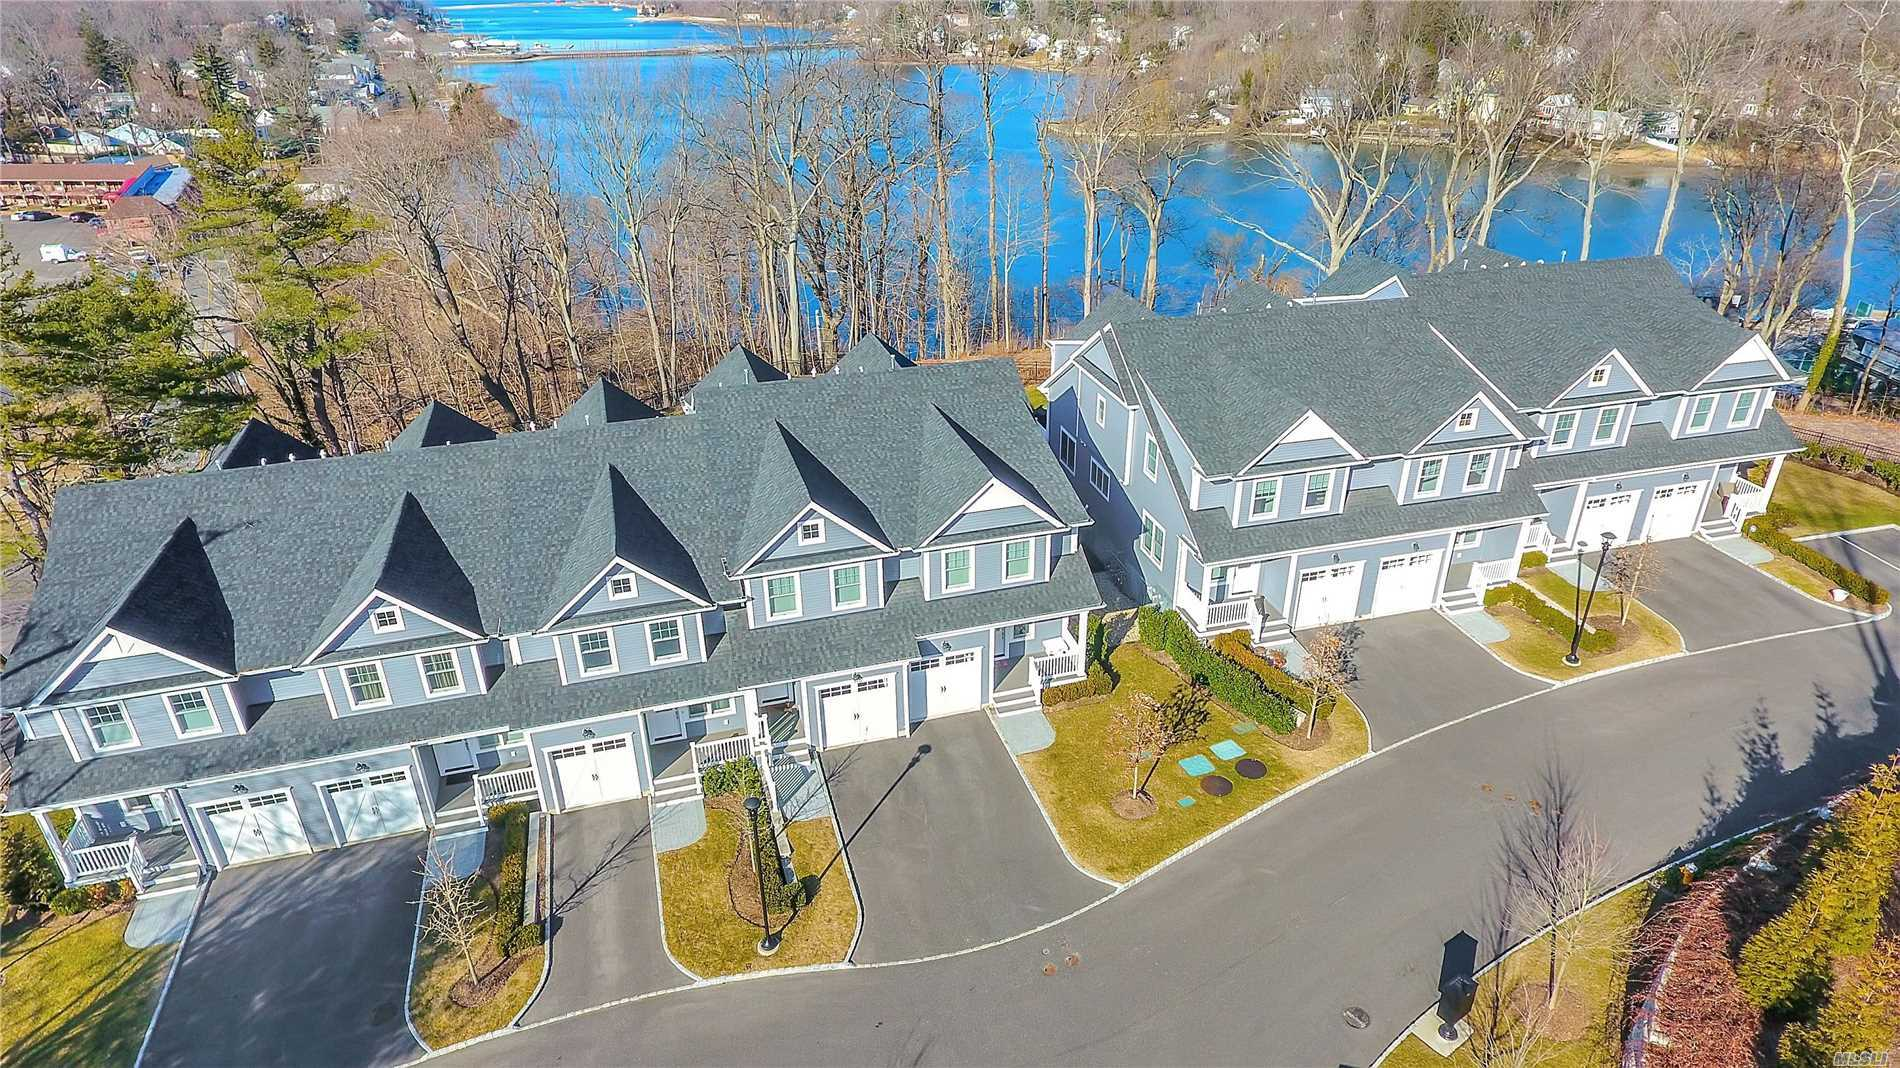 Enjoy Spectacular Water Views & See The Eagles Soar Over Centerport Harbor! Open Concept Floor Plan. Great Room With Coffered Ceiling , Custom Mill Work & Hardwood Flooring Throughout. 9' Ceilings On First Floor. Beautiful Kitchen& Baths- Deluxe Energy Efficient Stainless Steel Appliances & Custom Quartz Counter Tops & Jacuzzi Tub & Separate Shower In Mbth. Private 1.5 Acre Common Area. Special Financing Available. Luxurious, Chic & Sophisticated Living At It's Best!